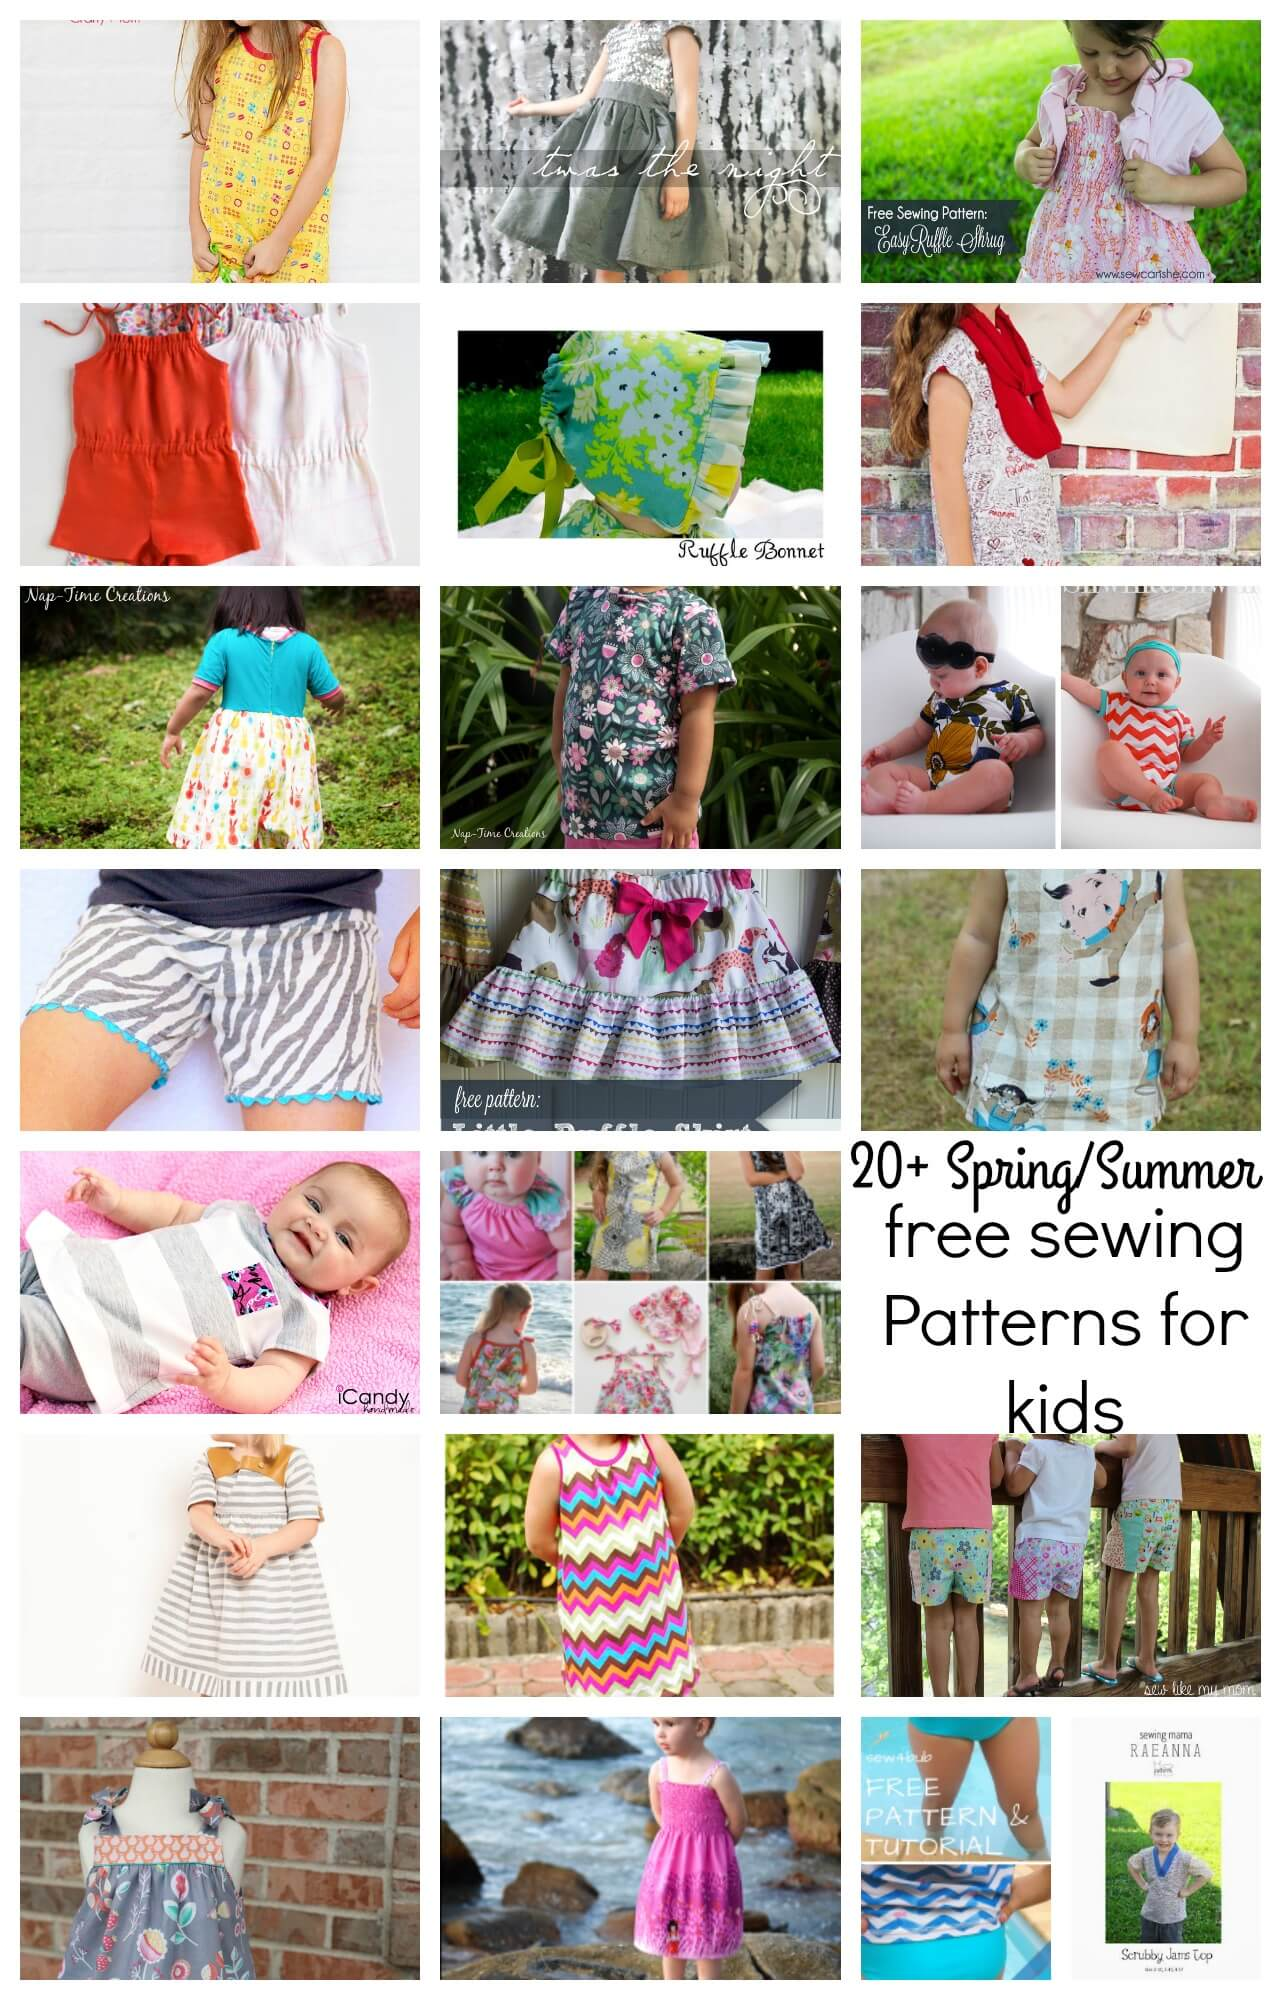 Spring Summer free sewing patterns for kids 2016